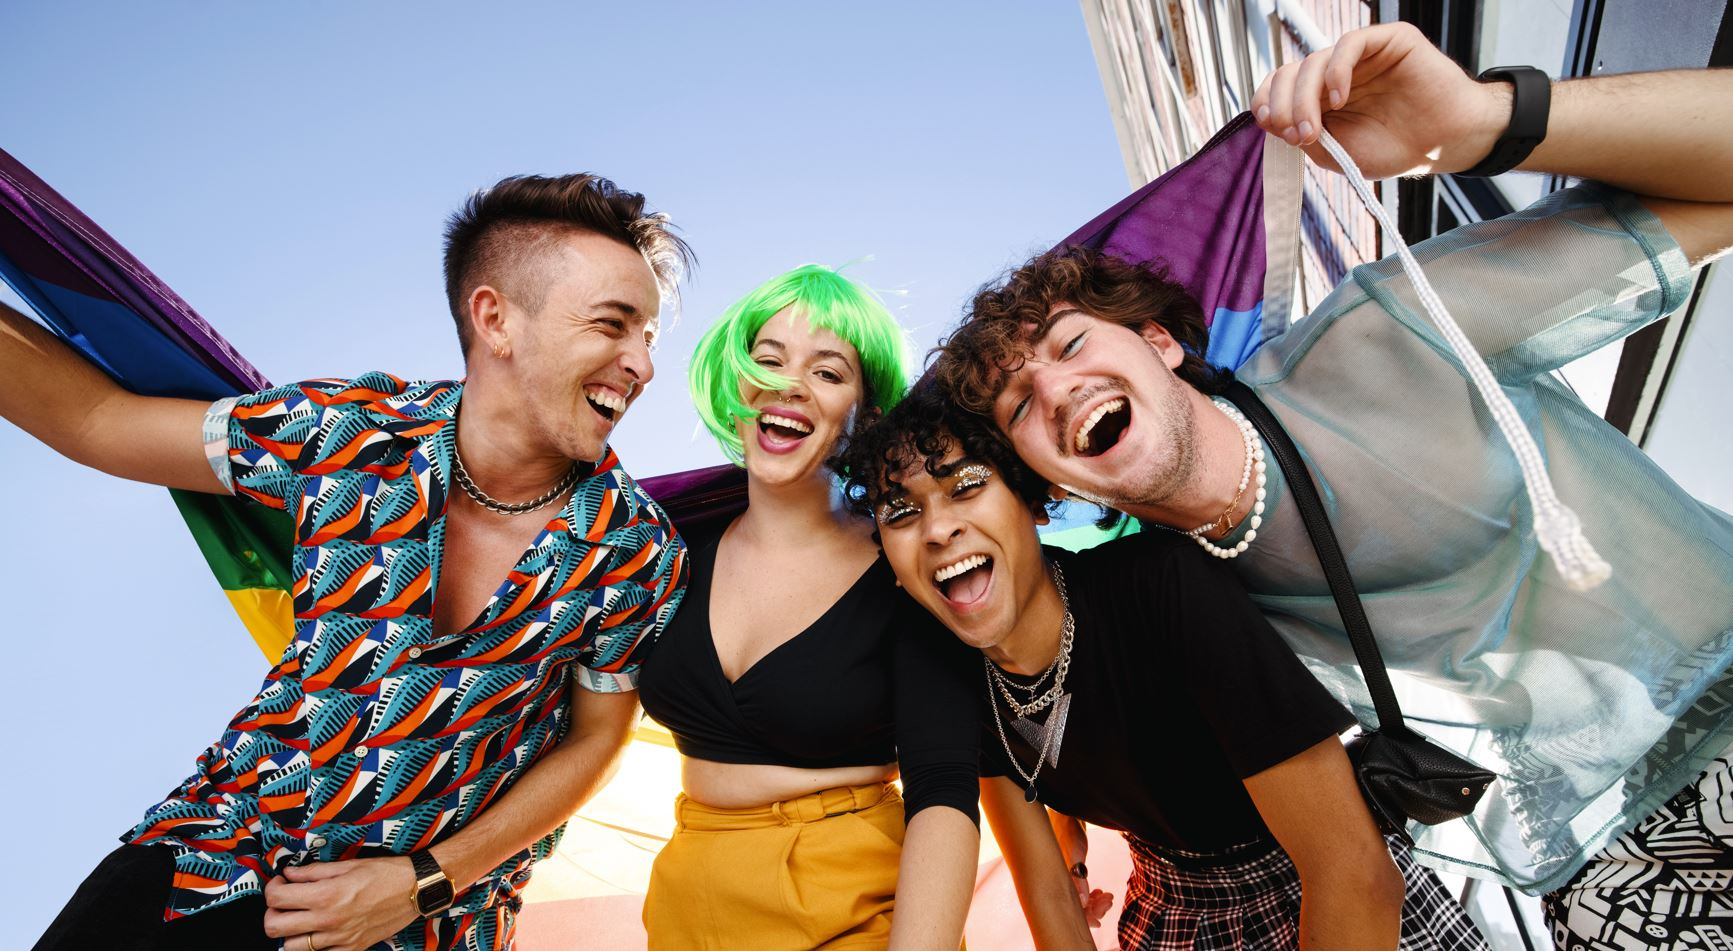 New Research Examines Diversity of Nonbinary Youth